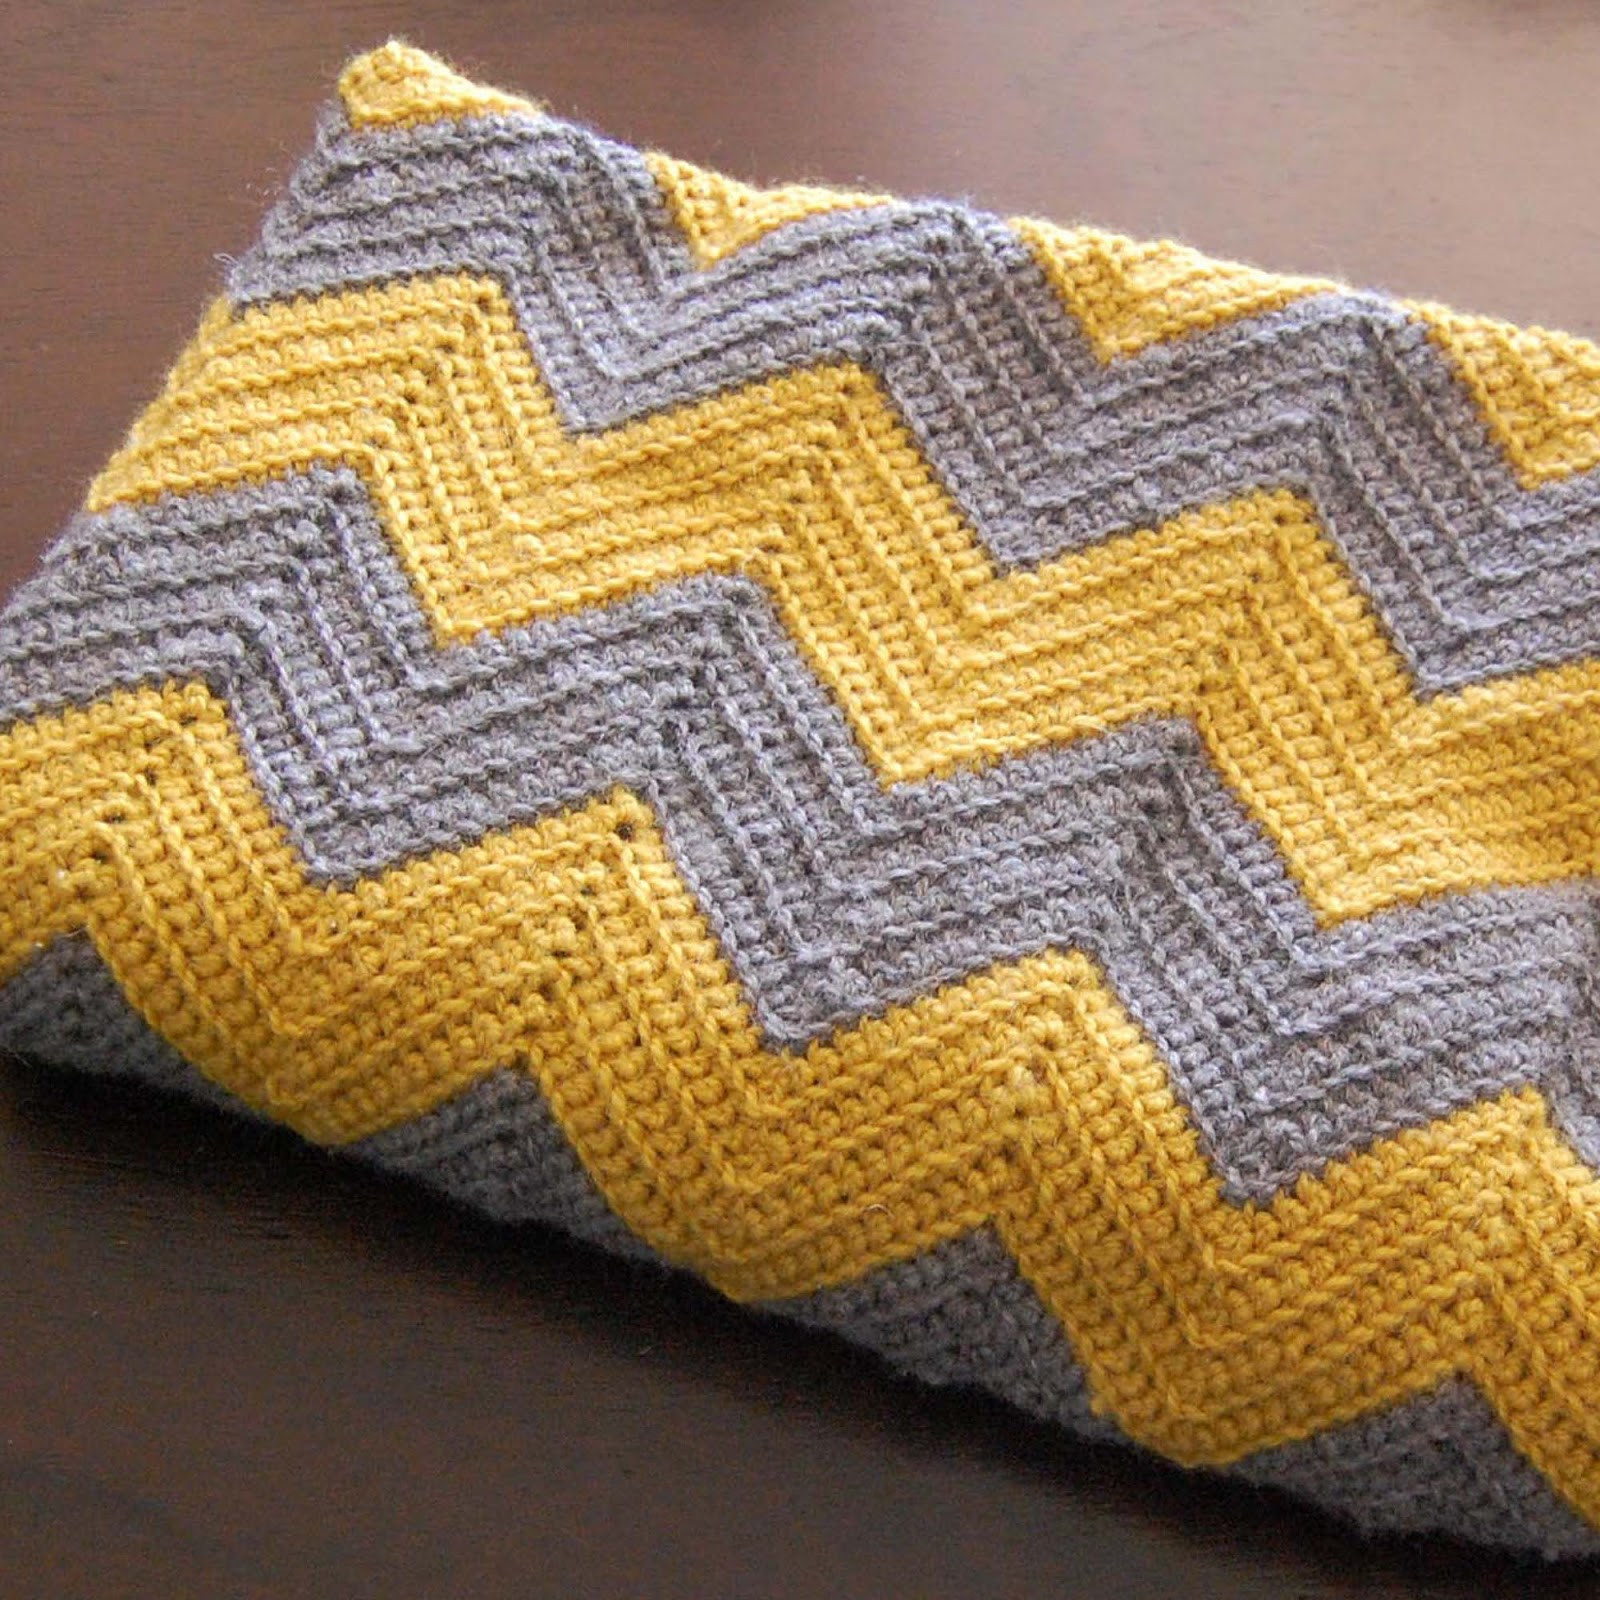 Crochet Throw Beautiful Diy Crochet Chevron Baby Blanket Of Luxury 41 Pics Crochet Throw